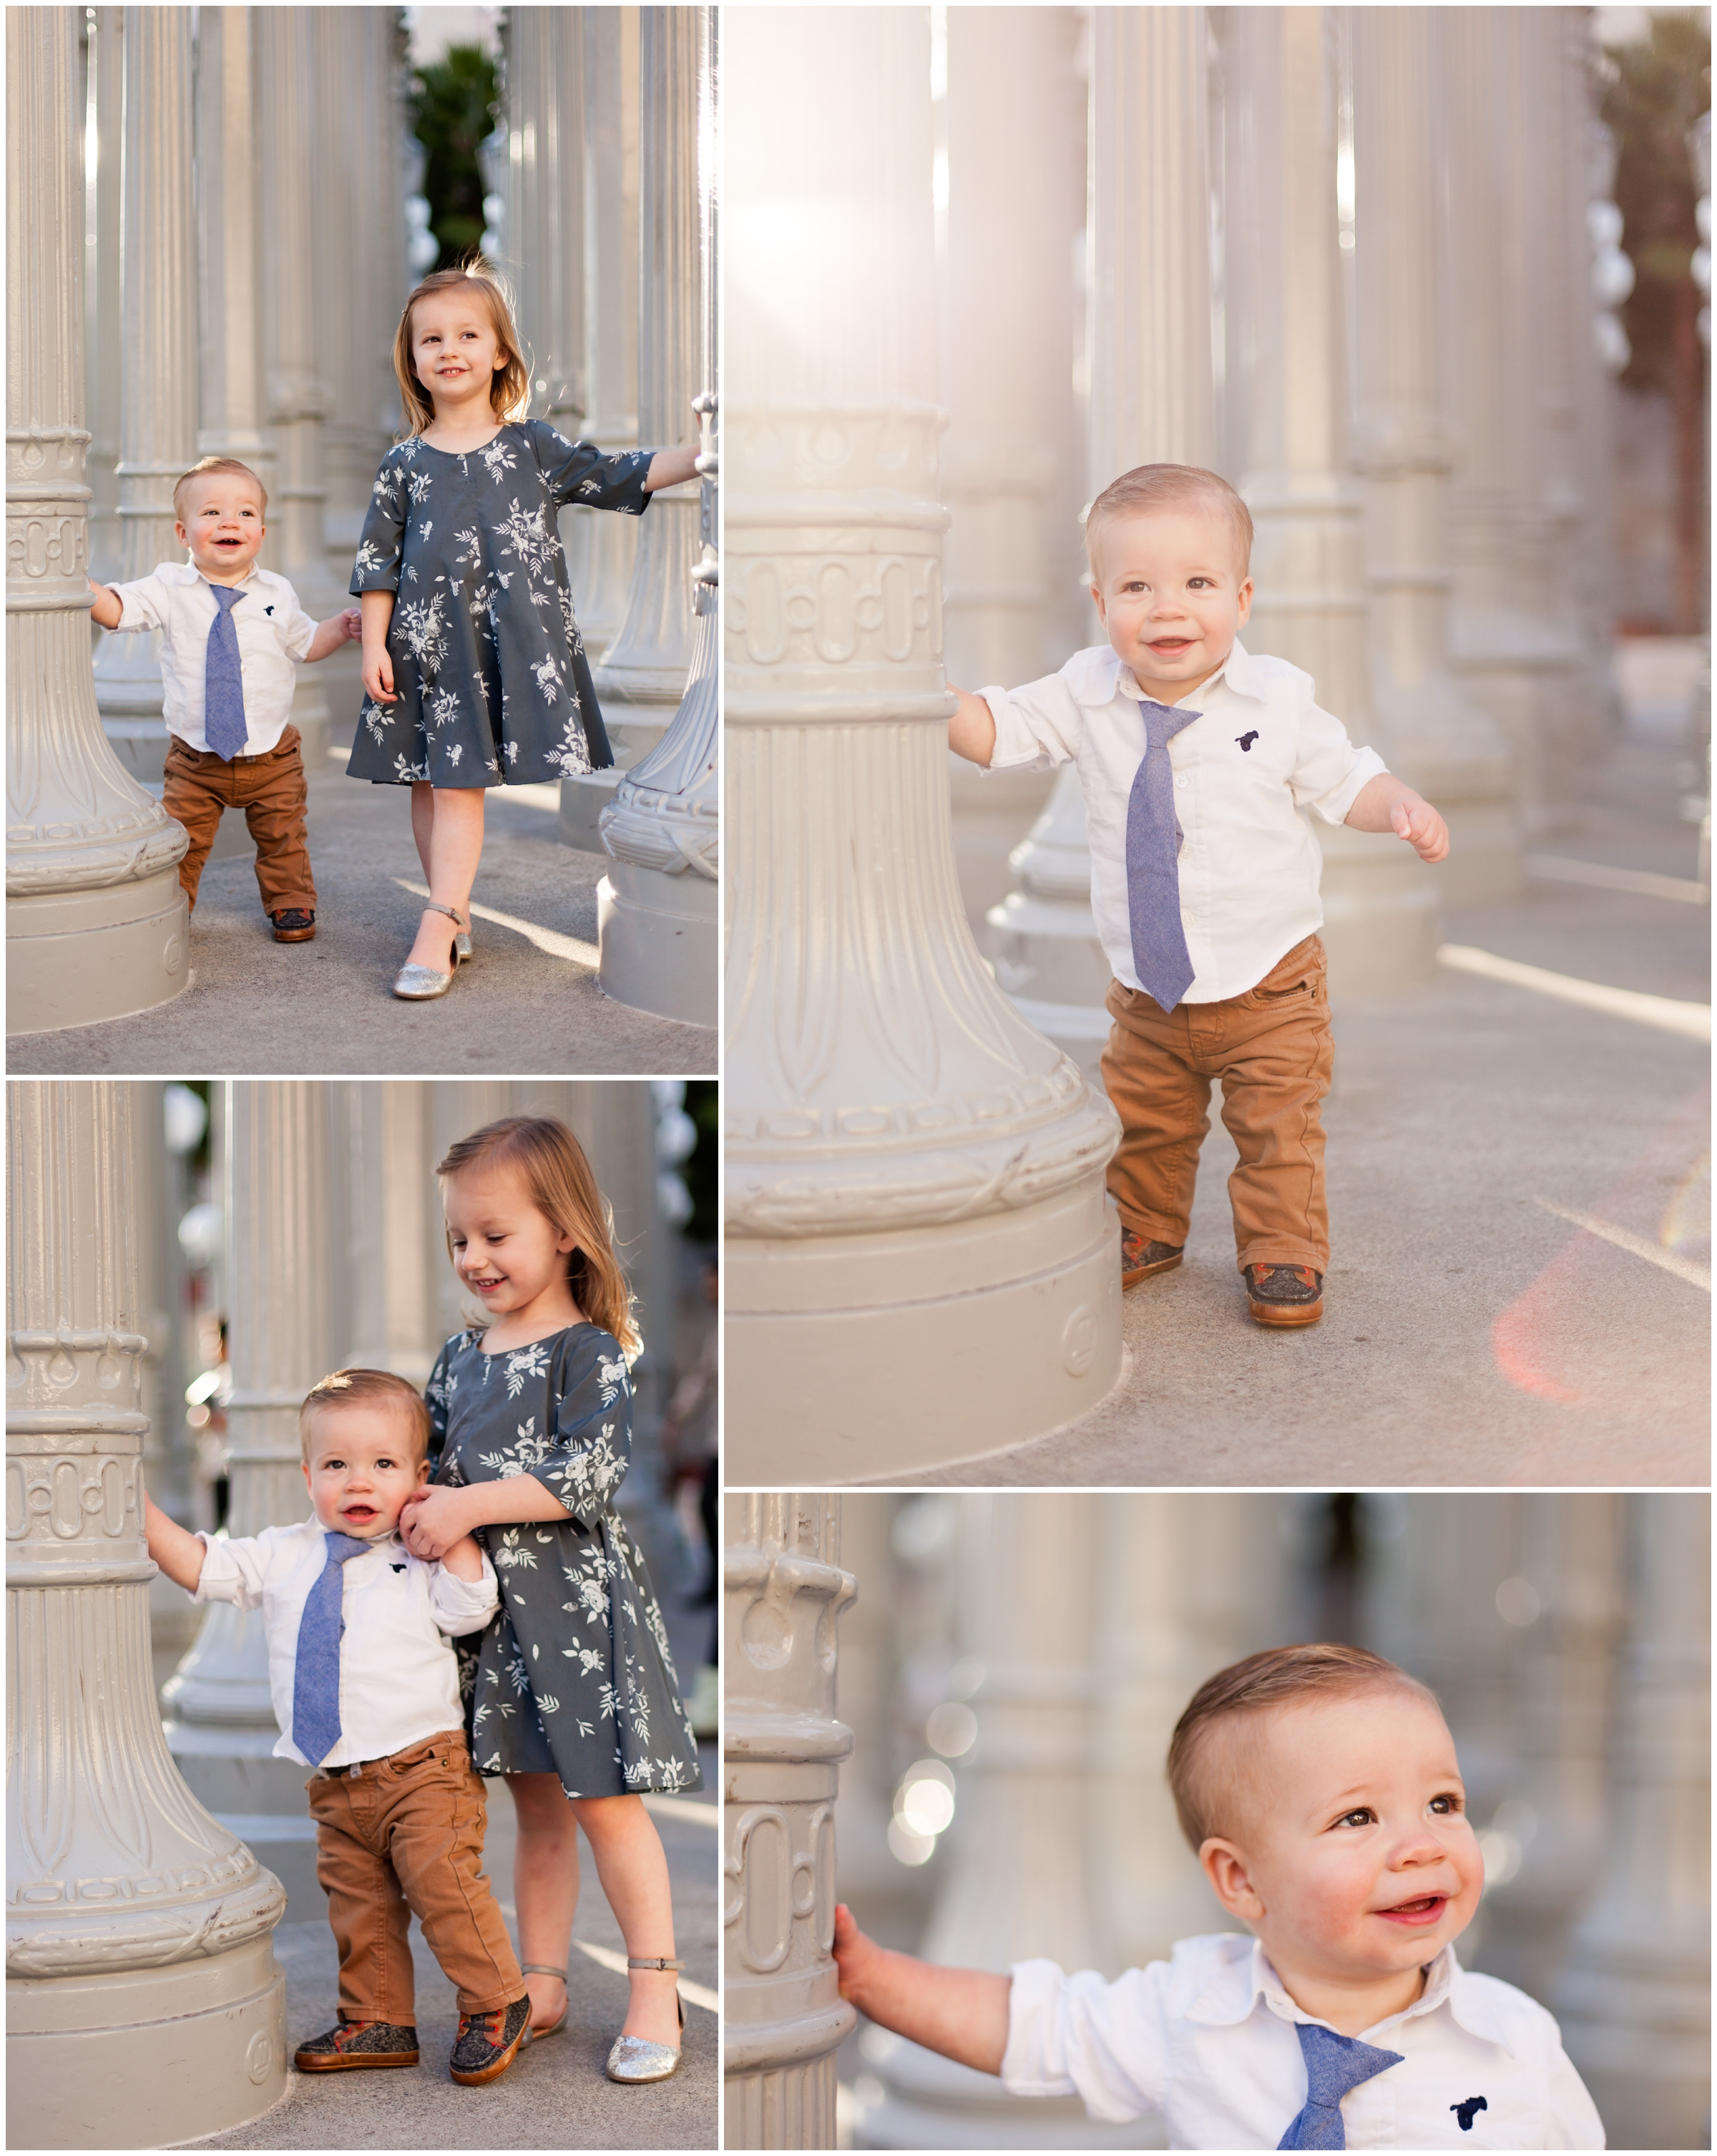 Siblings at LACMA Lightposts by Just Maggie Photography - Los Angeles Family Photographer